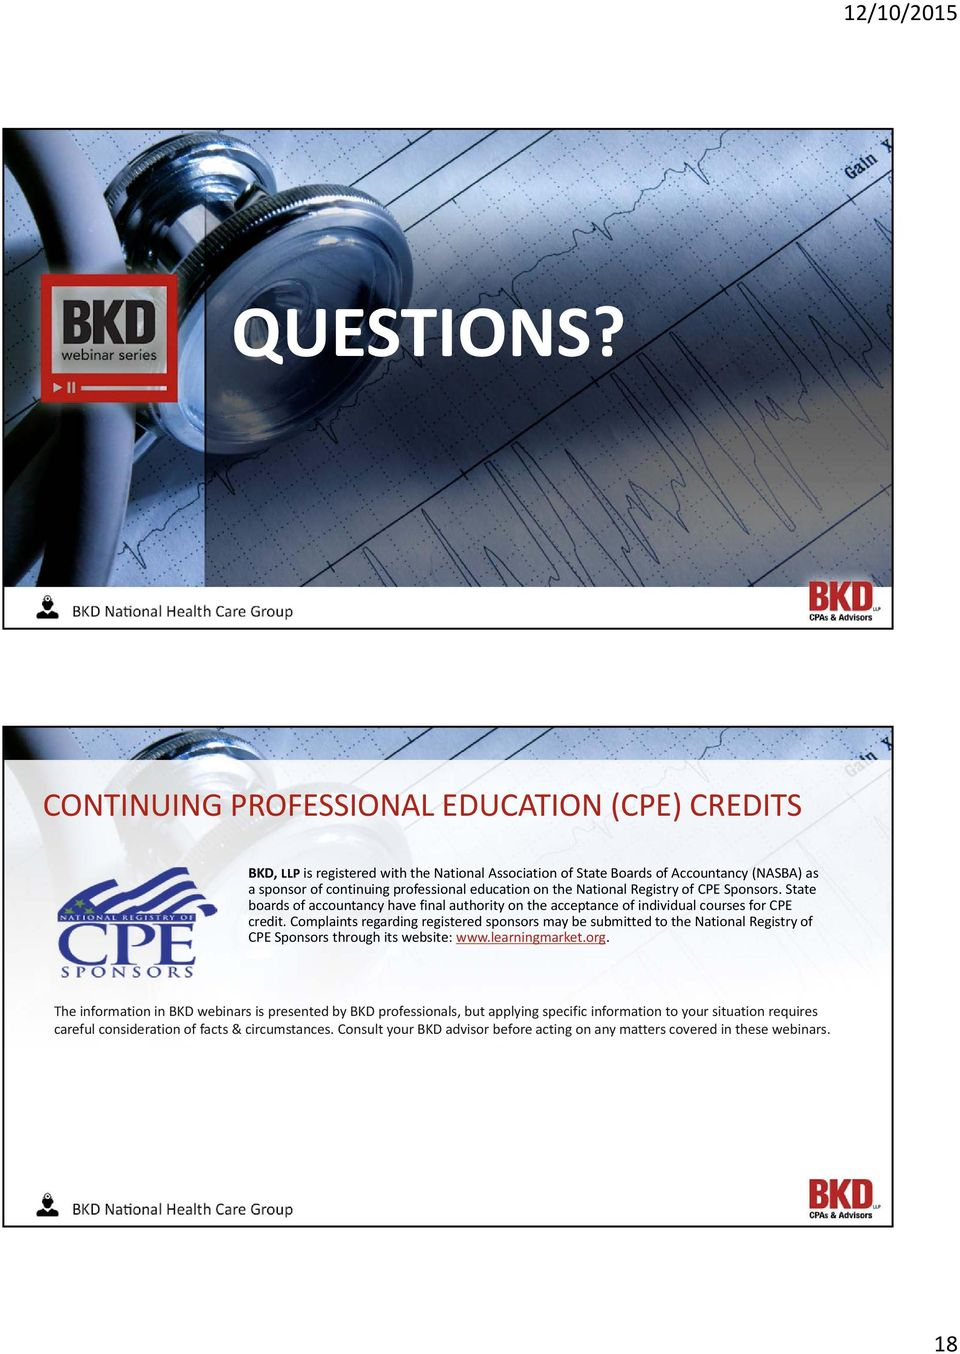 education on the National Registry of CPE Sponsors. State boards of accountancy have final authority on the acceptance of individual courses for CPE credit.